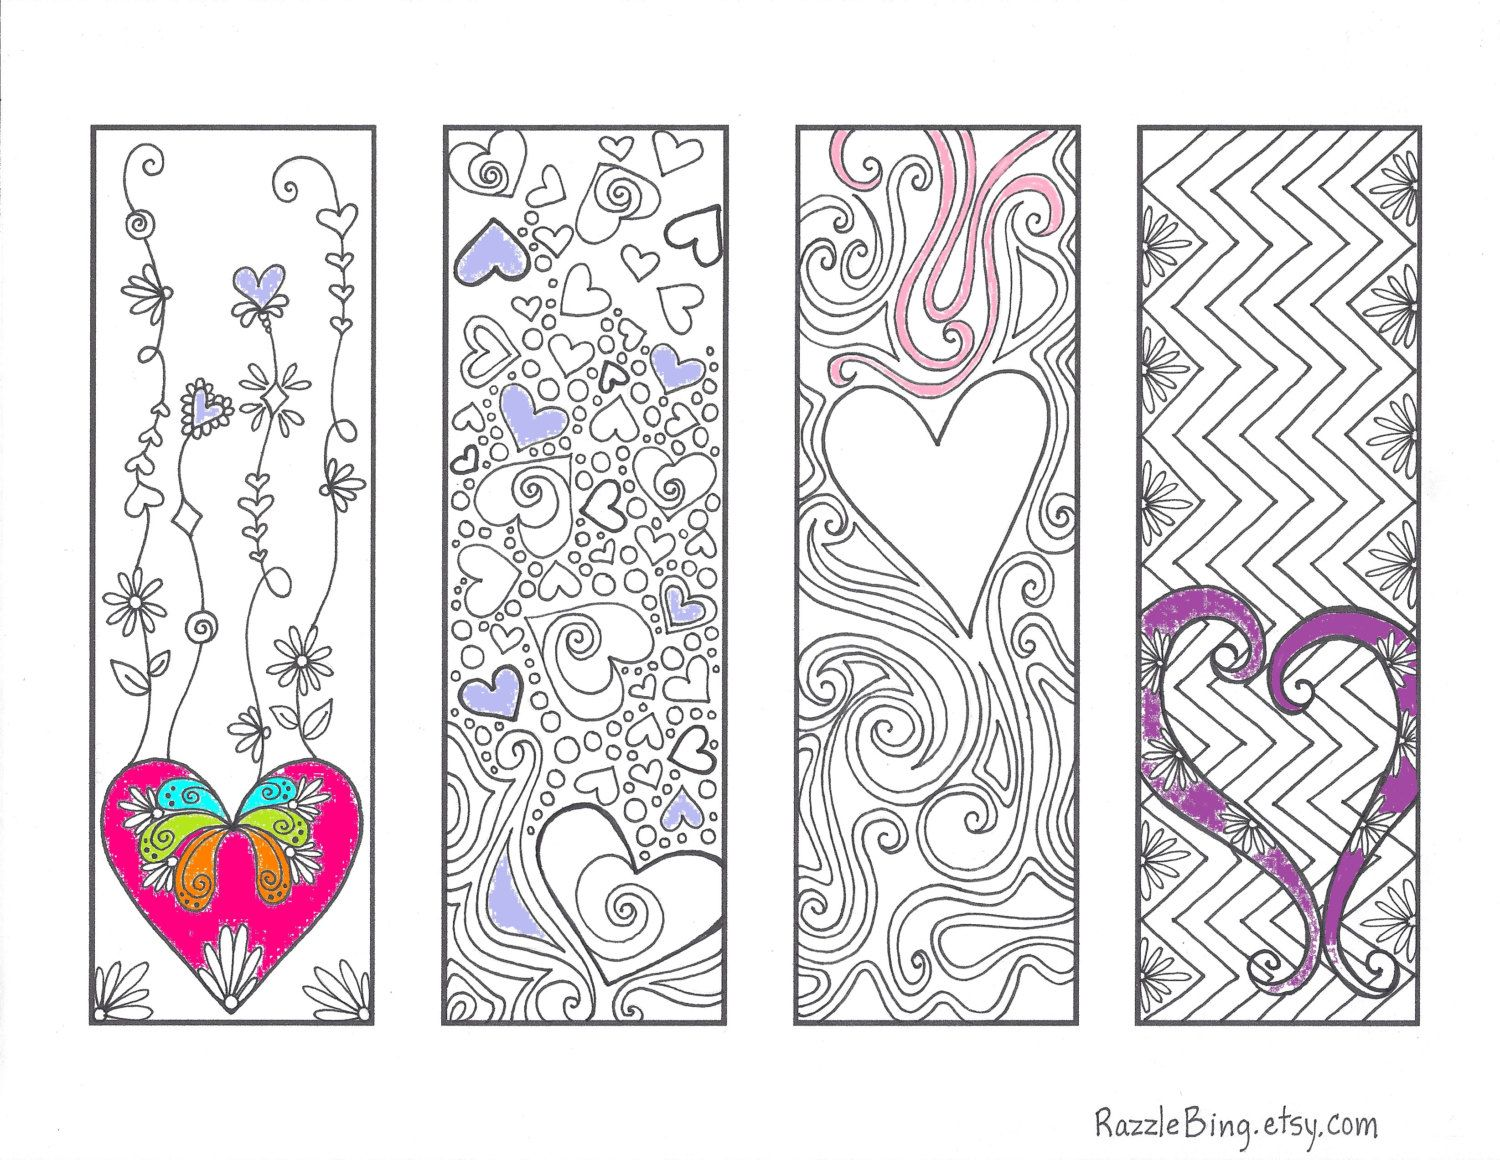 Zen doodle colour - Diy Bookmark Printable Coloring Page Zentangle By Razzlebing